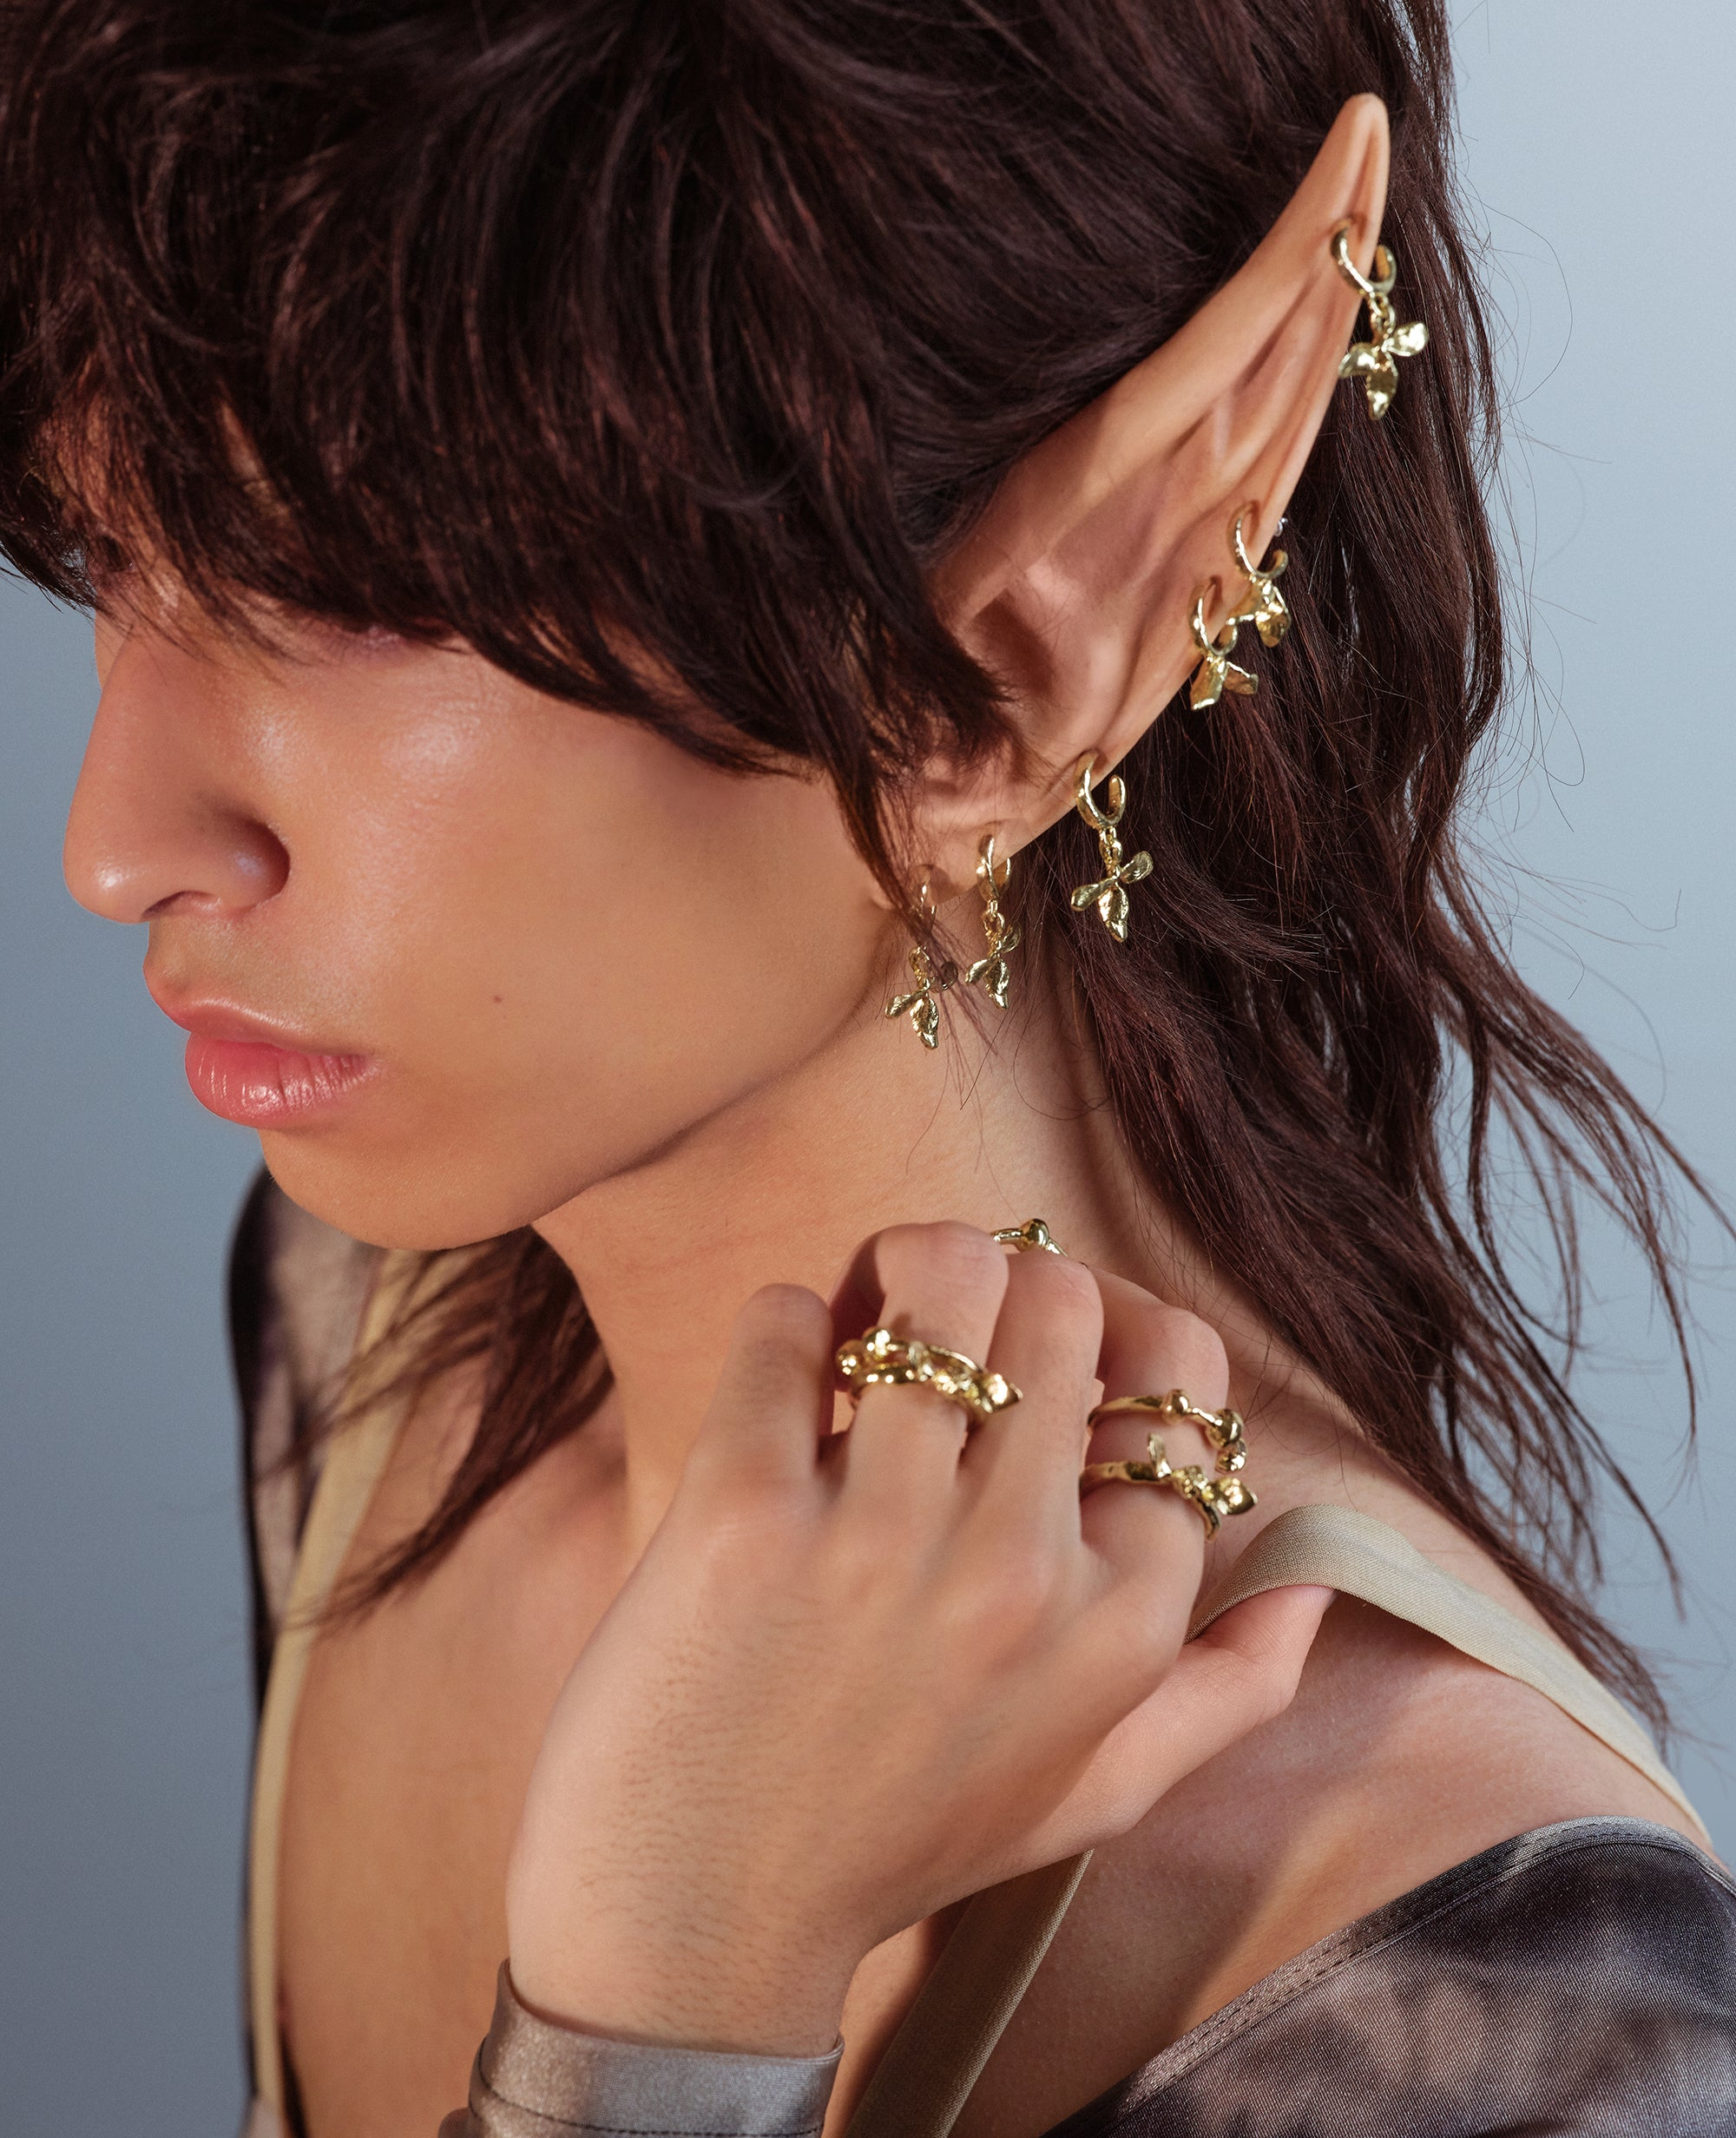 TRIFOLI // golden hoops - ORA-C jewelry - handmade jewelry by Montreal based independent designer Caroline Pham